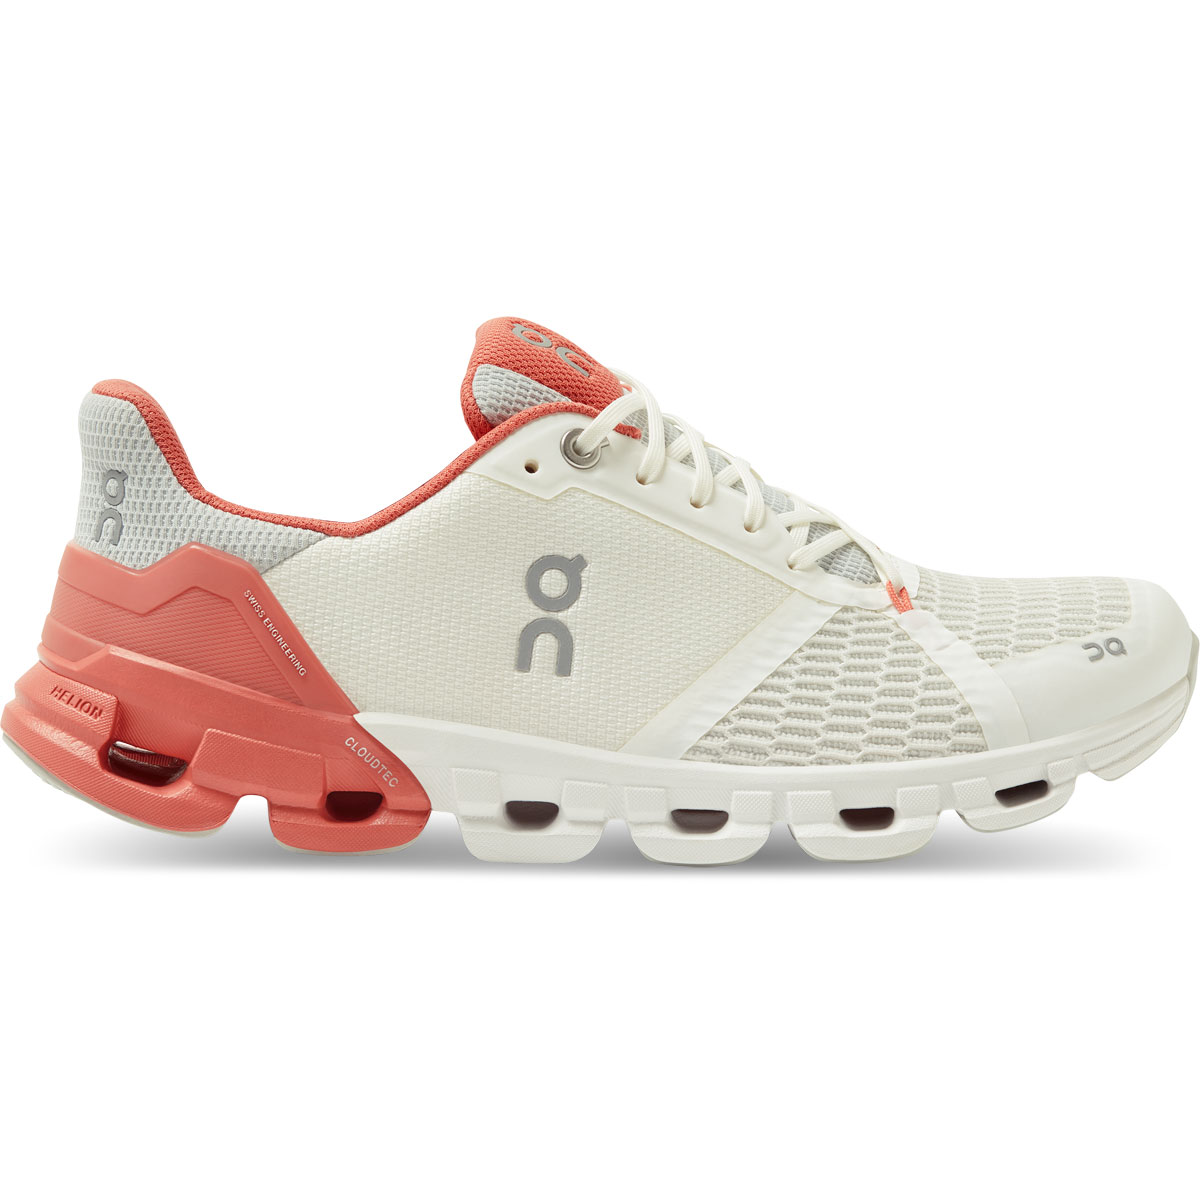 Women's On Cloudflyer 2.0 Running Shoe - Color: White/Coral - Size: 5 - Width: Regular, White/Coral, large, image 1